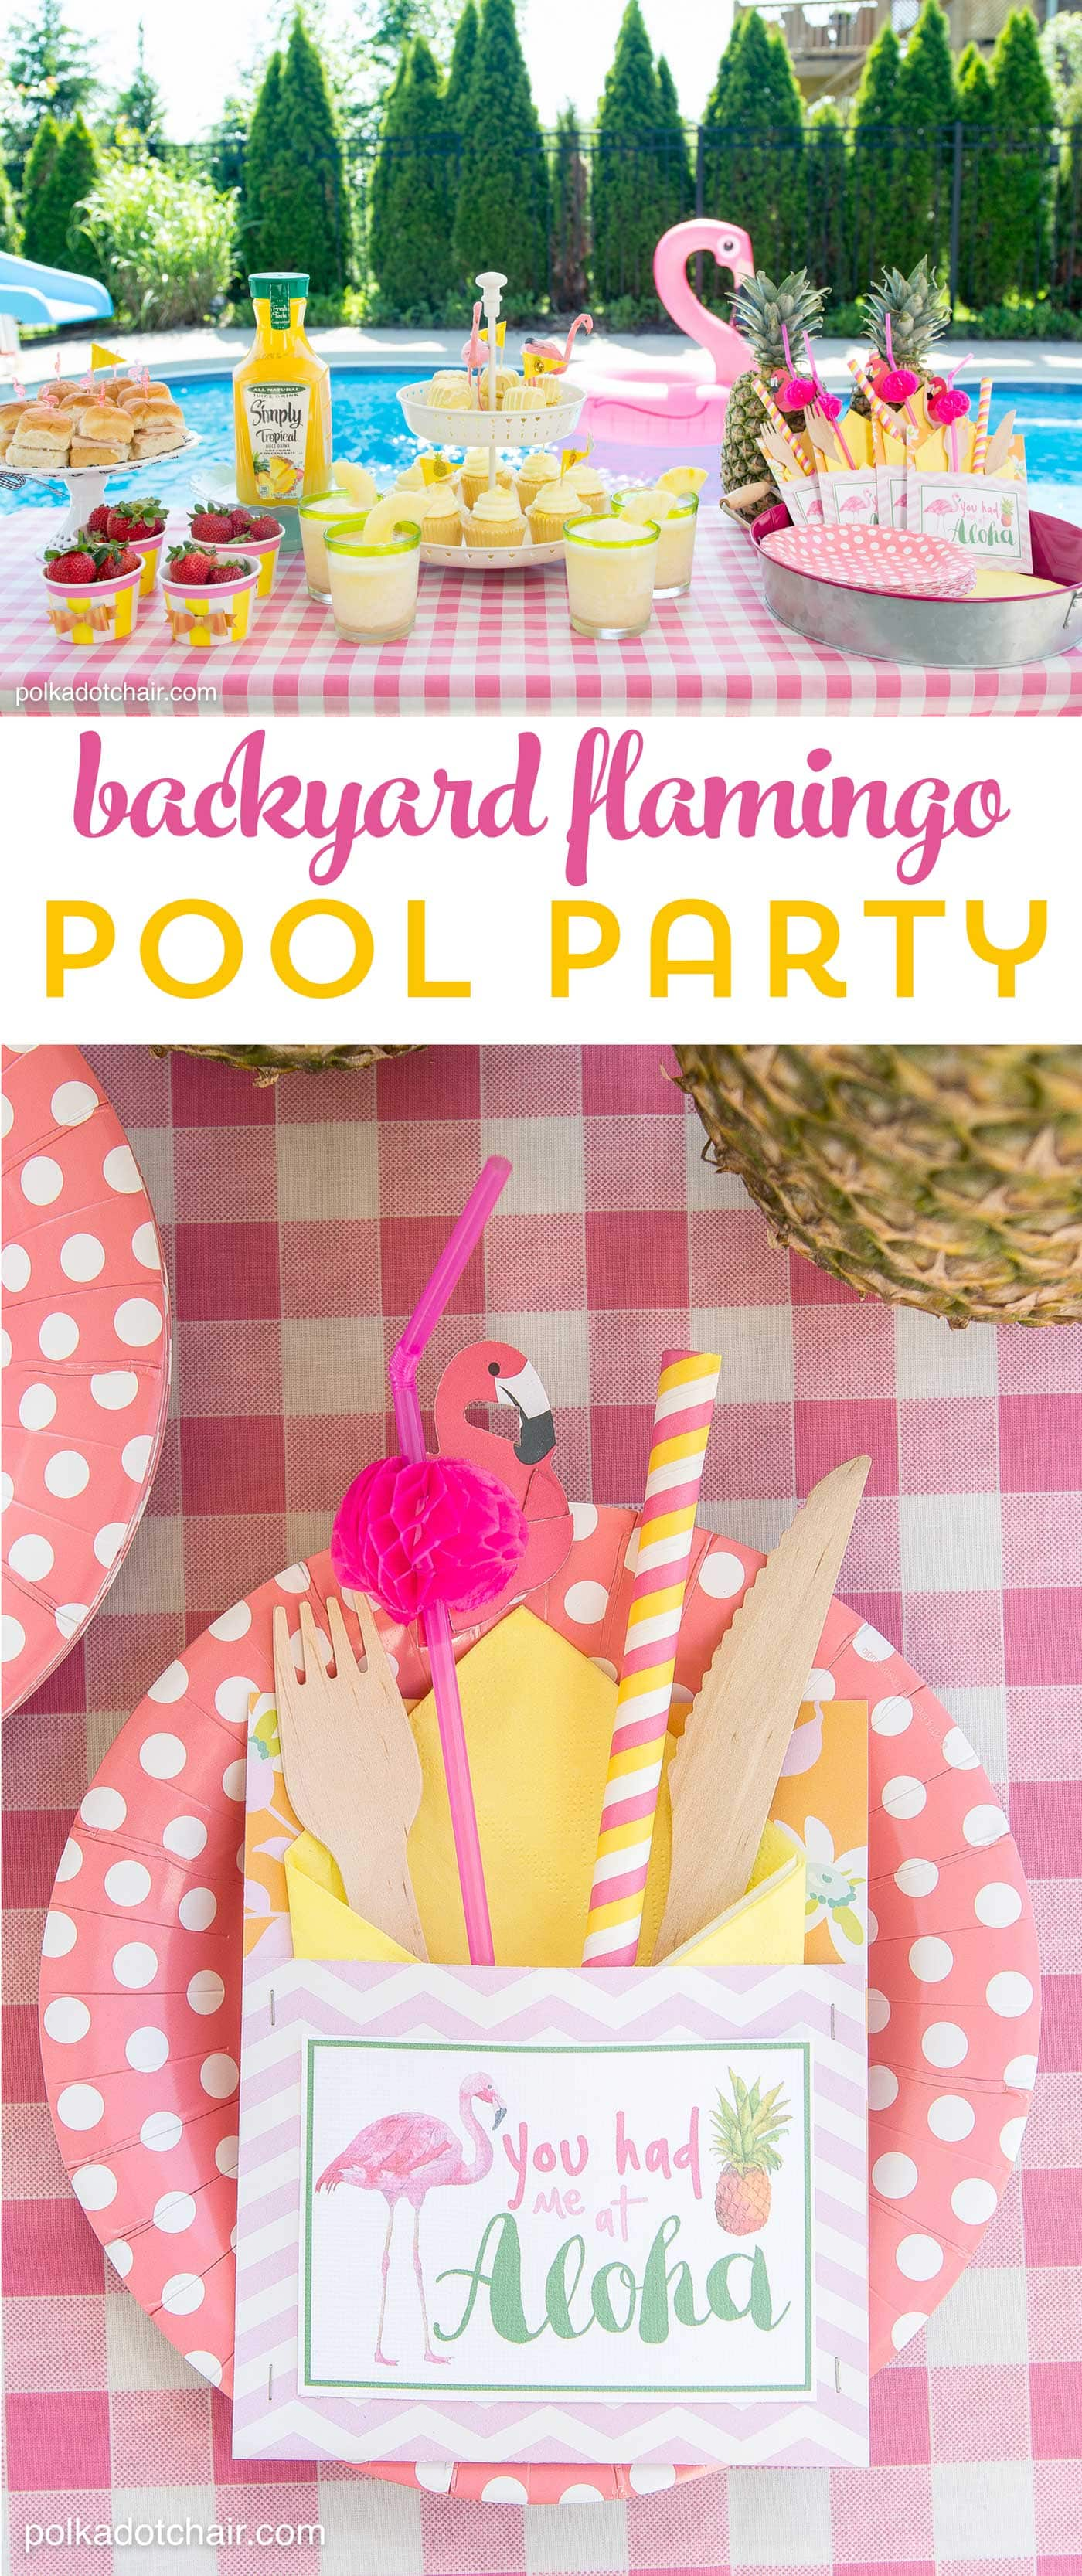 Lots of fun ideas to throw a backyard flamingo themed pool party, including free printable silverware containers and a recipe for pineapple and mango virgin pina coladas